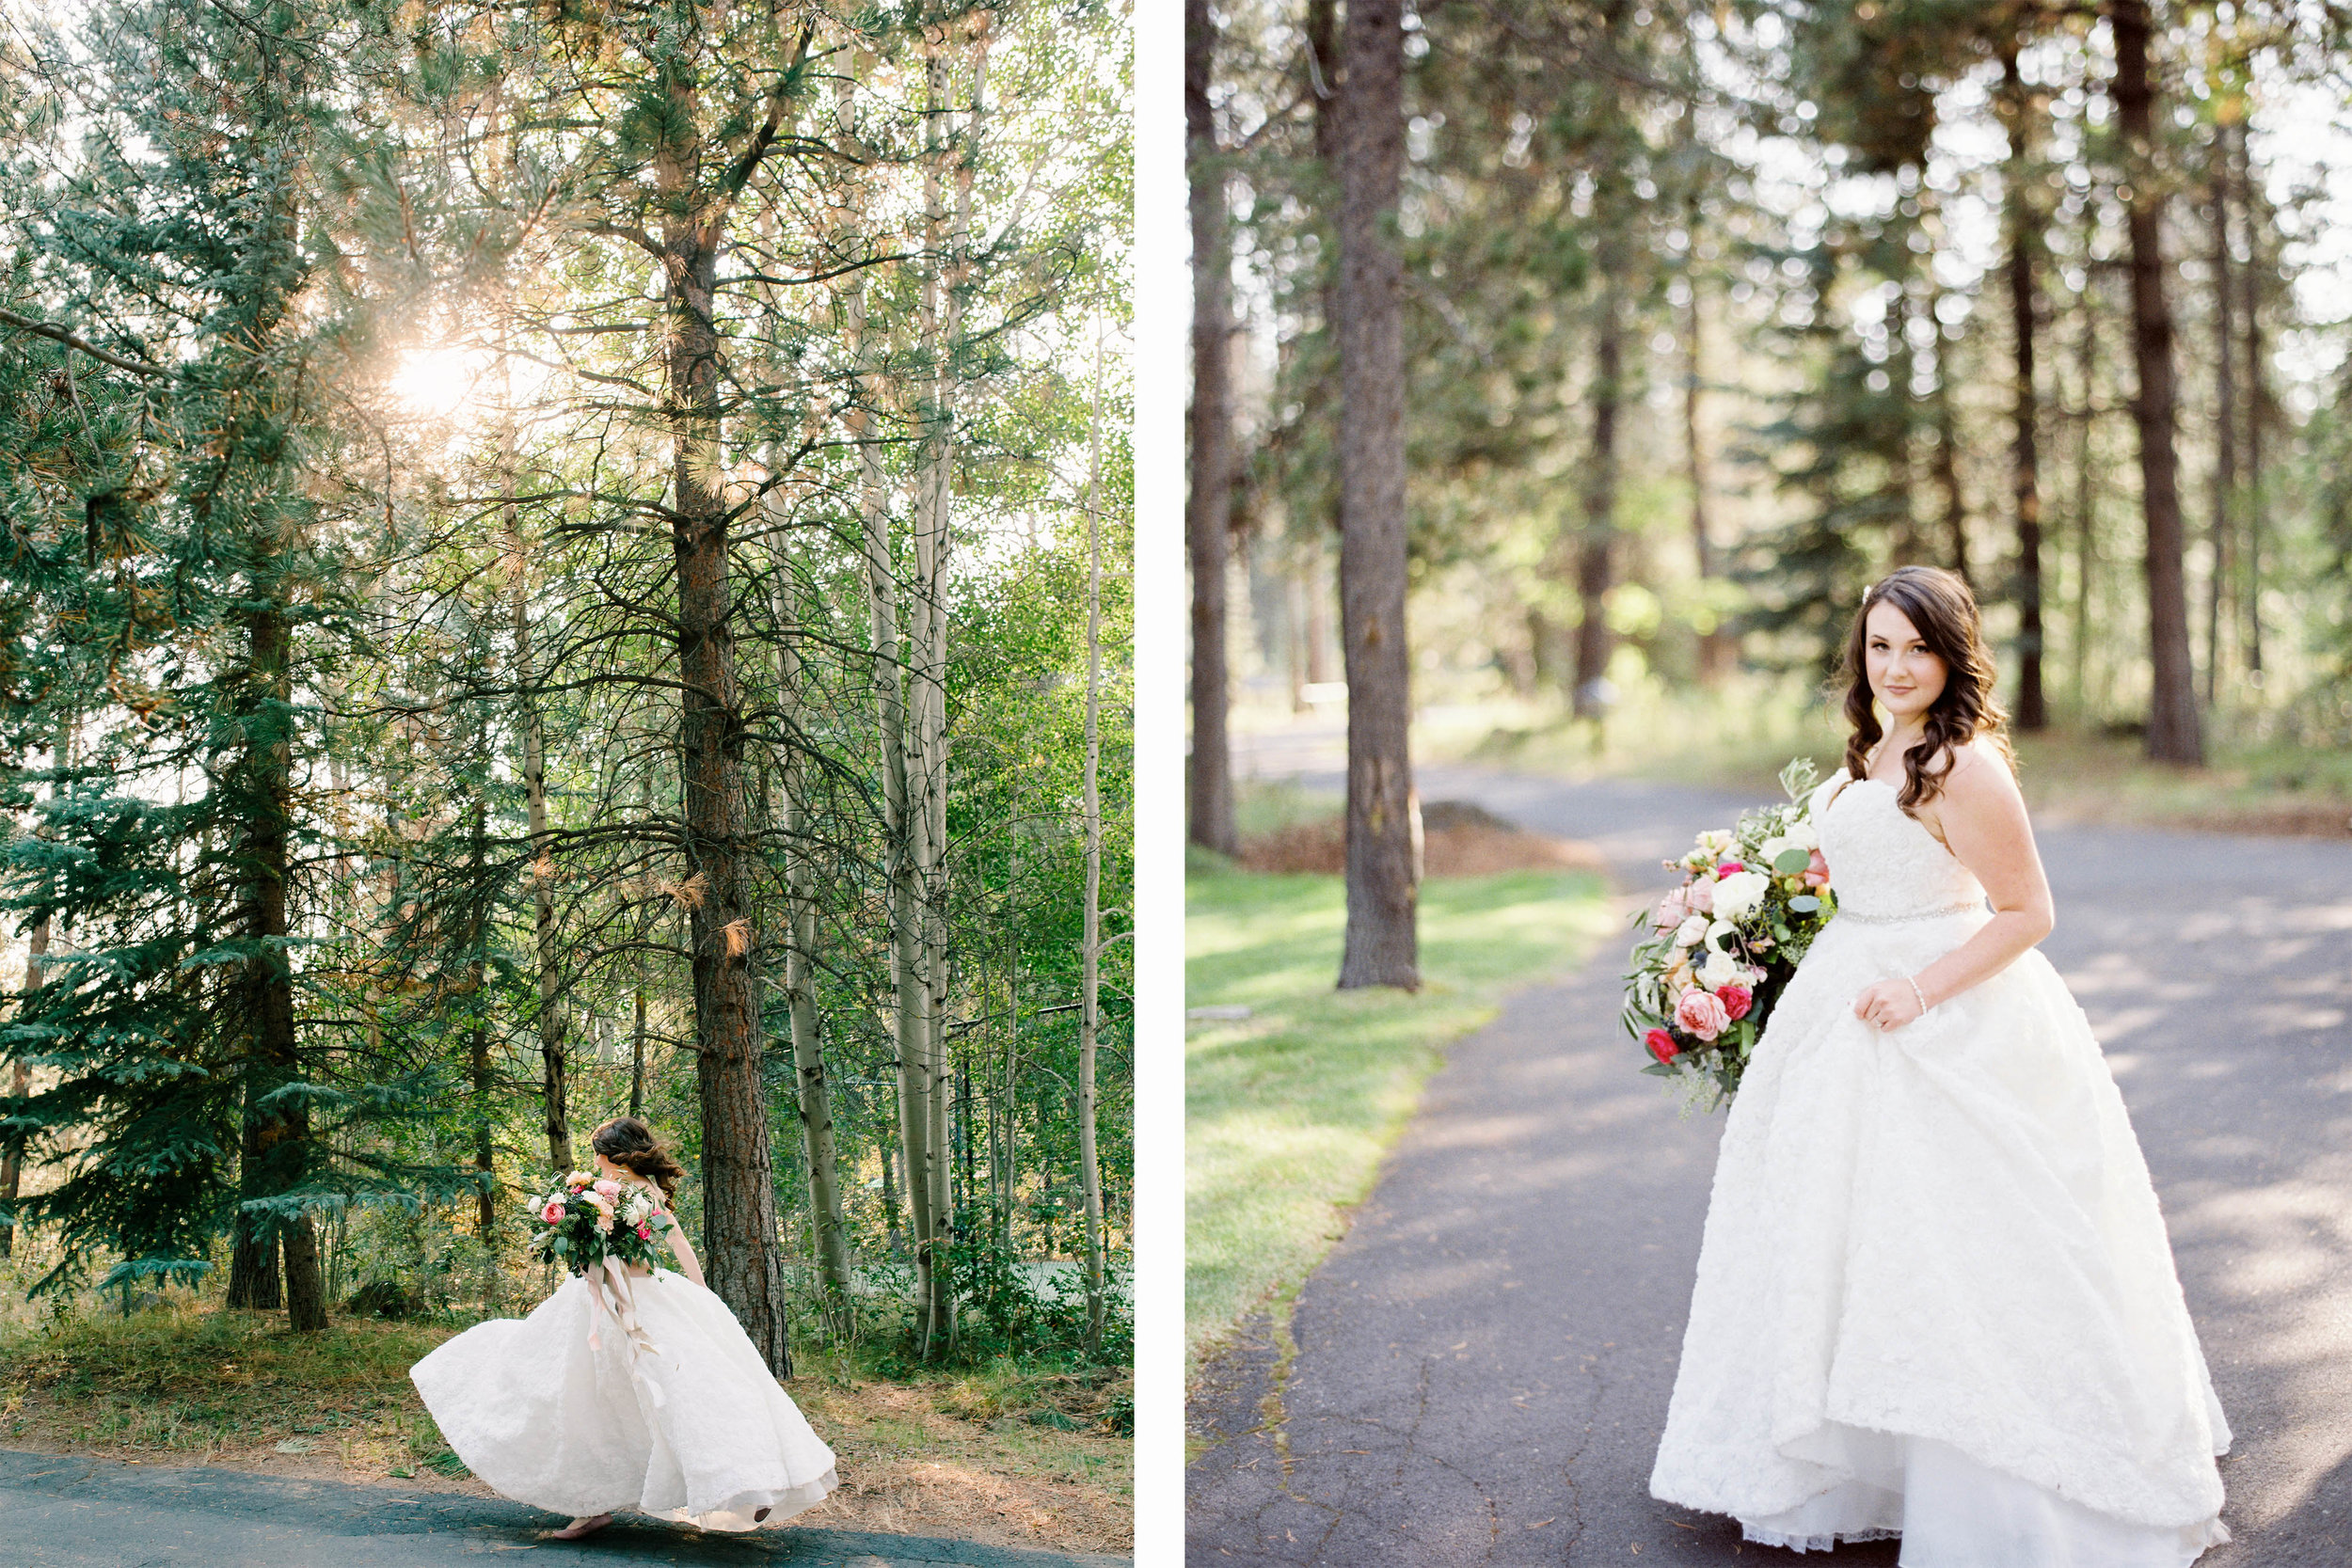 Above photos by Lahna Marie Photography